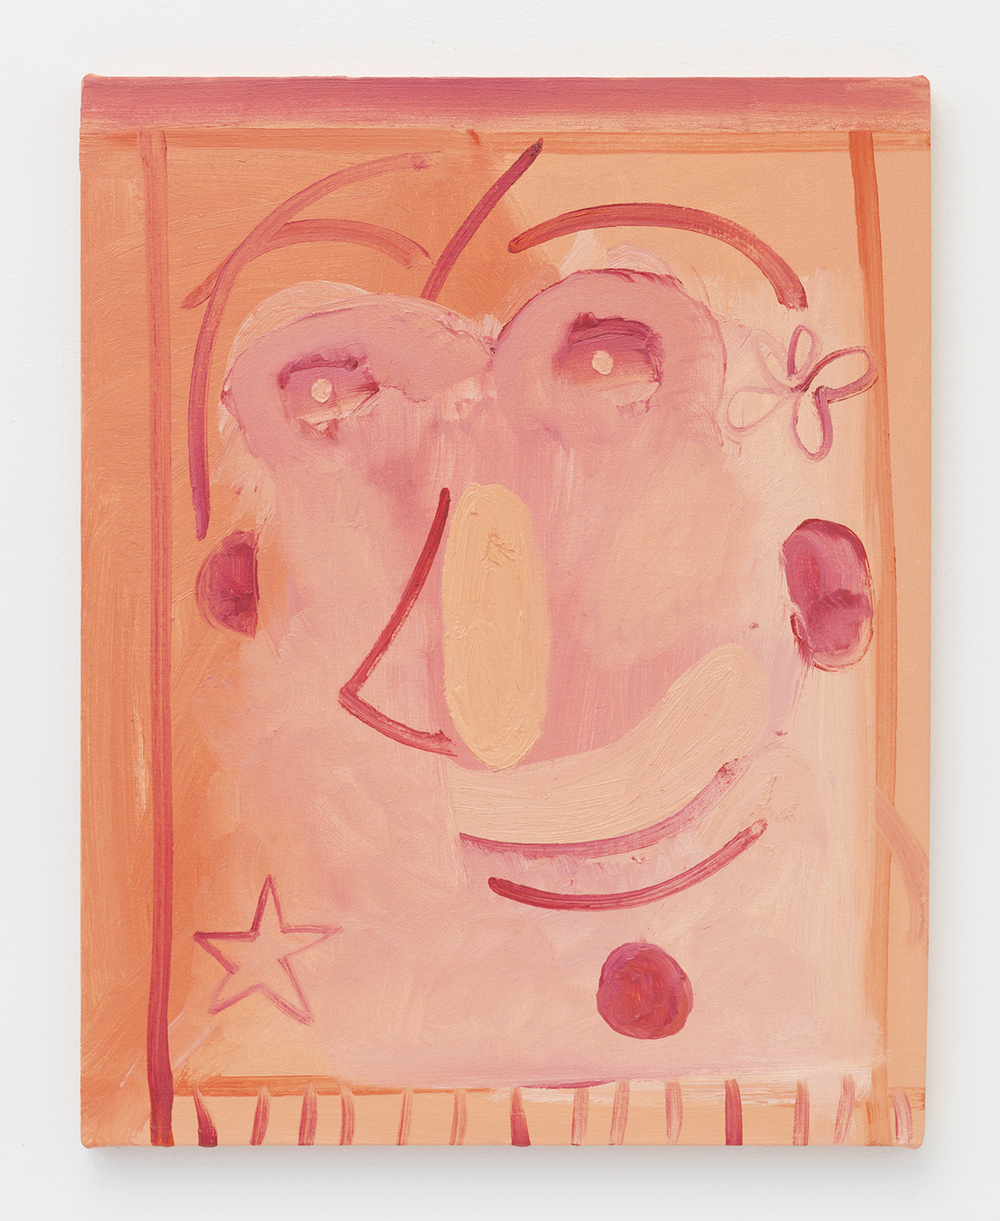 Brian Kokoska  Untitled (Fuzzy Peach) , 2014 Oil on canvas 23 x 18 inches